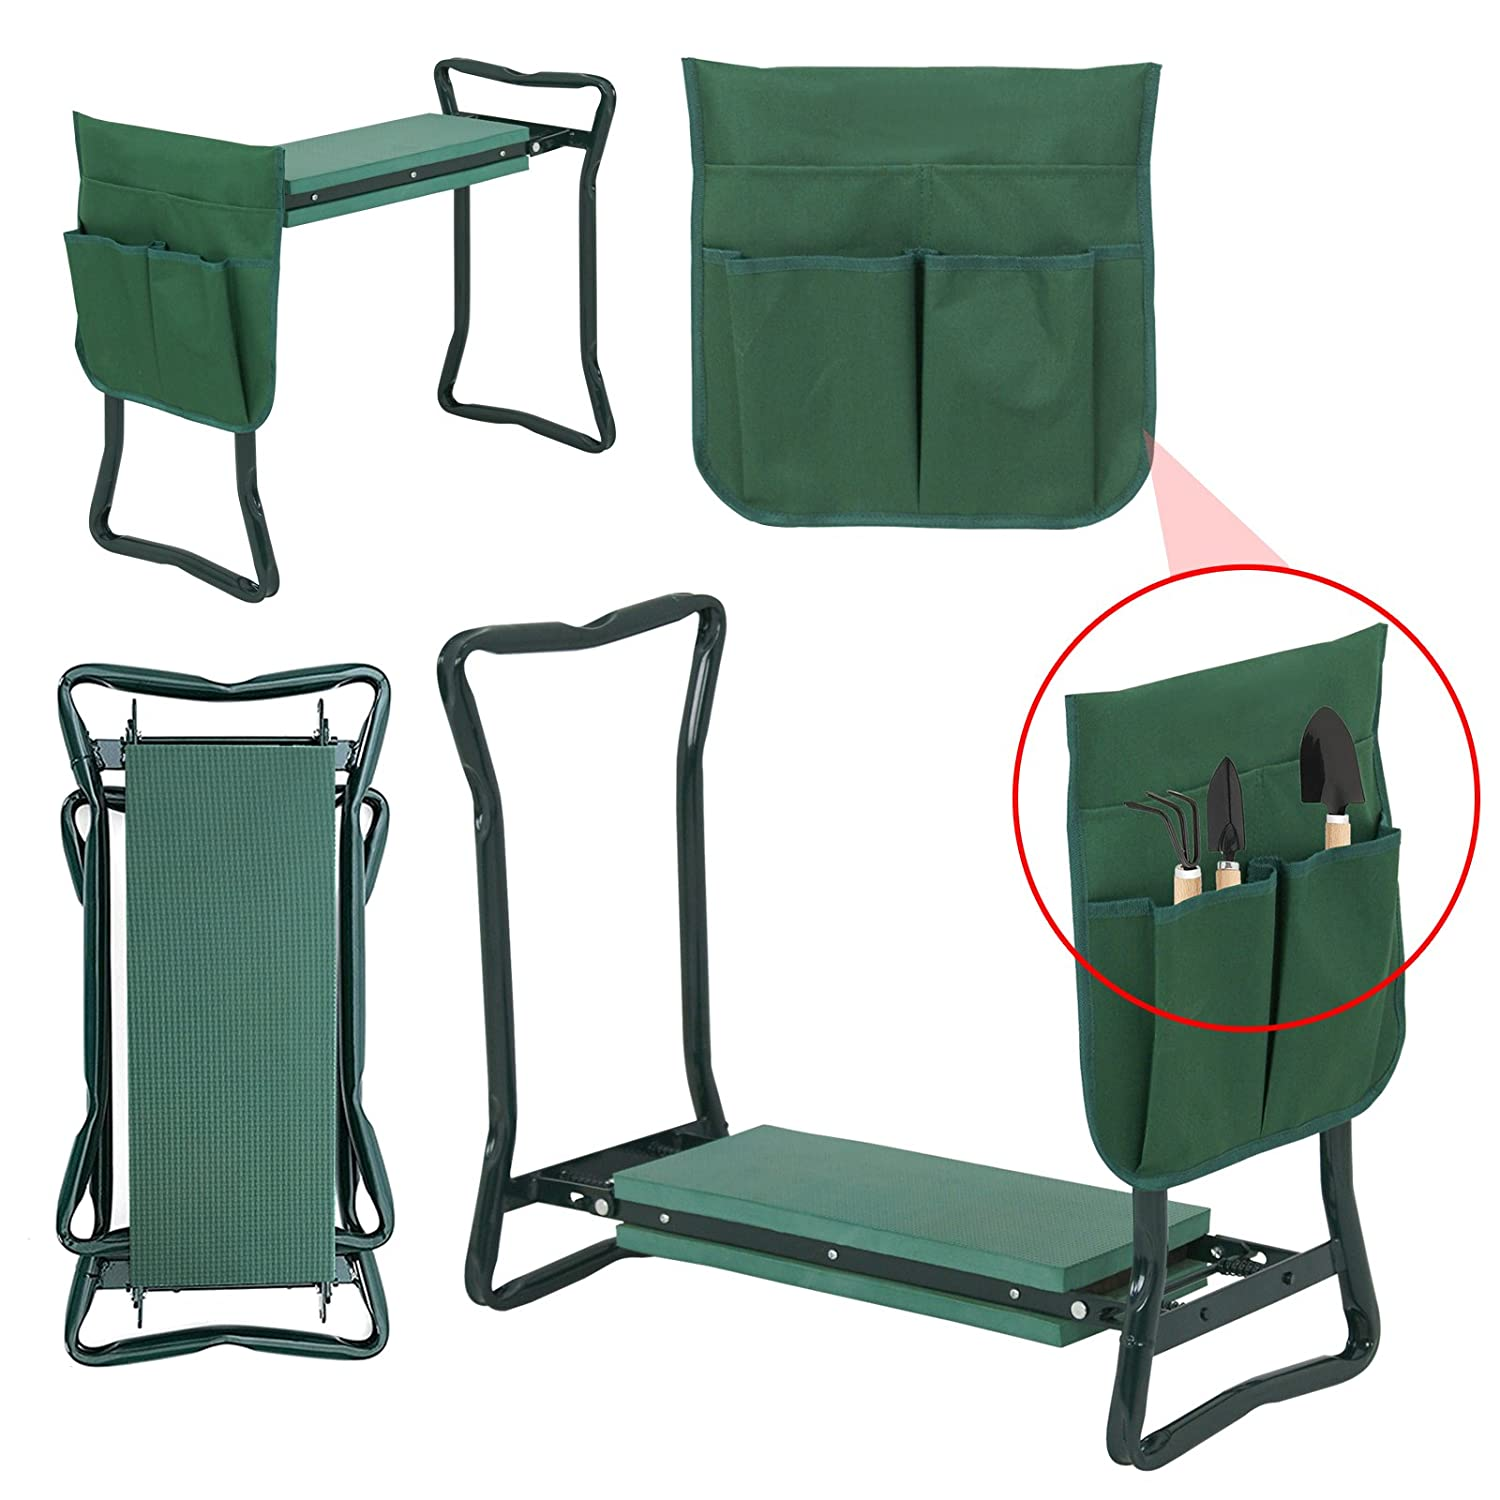 Heavy Duty Yard Gardening Chair with Soft Kneeling Pad,Green Smartxchoices Folding Garden Kneeler Seat Garden Bench Stool with Handles Multi-use Pouch